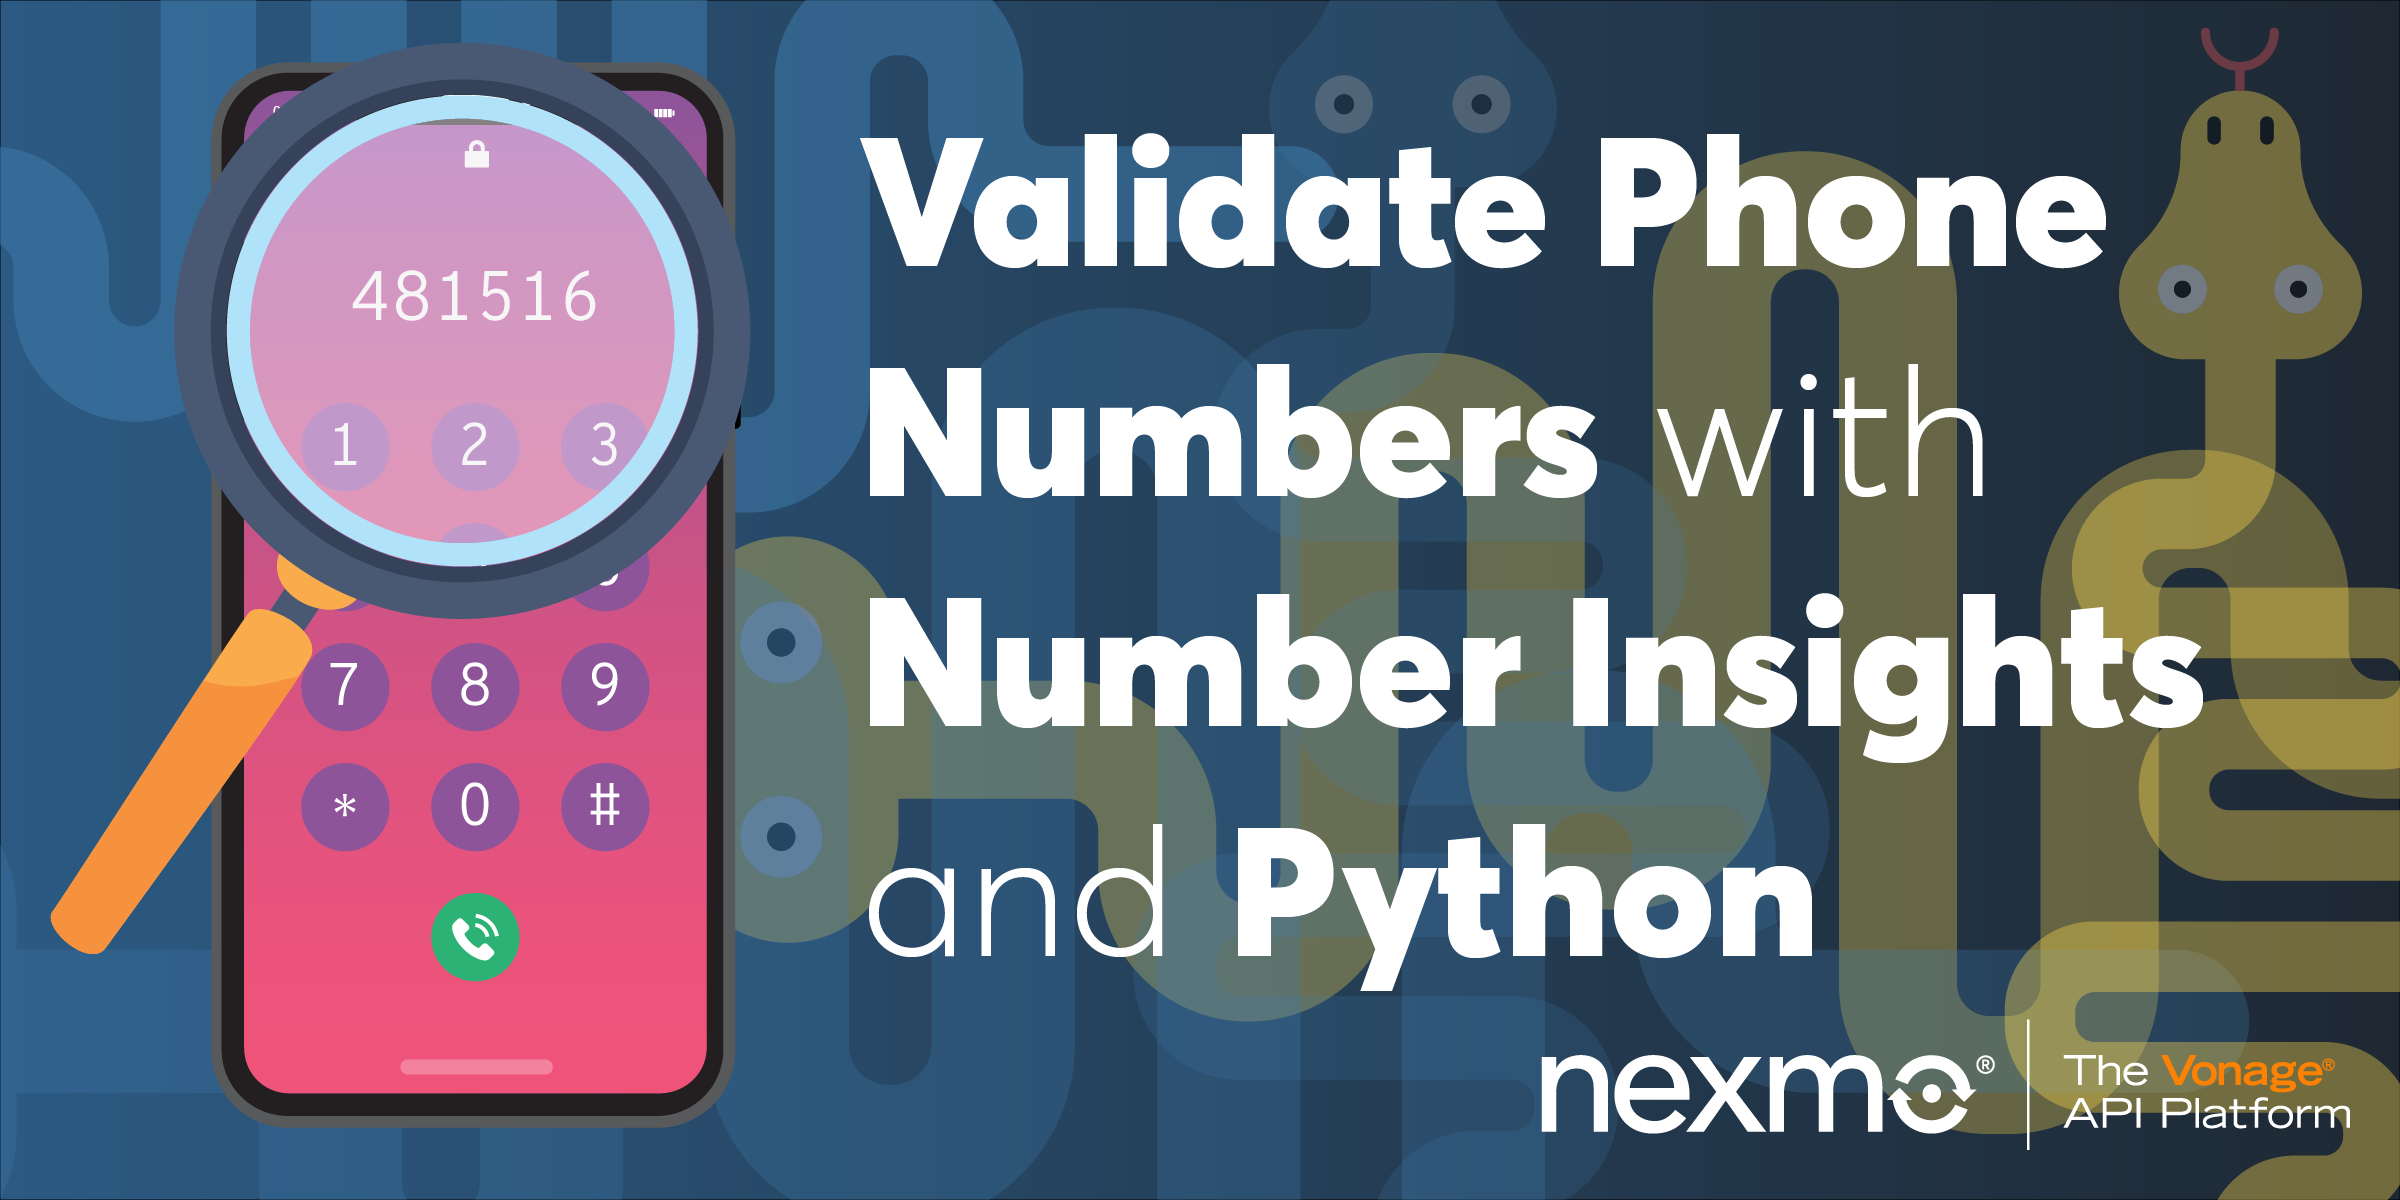 Validate Phone Numbers with Number Insights and Python